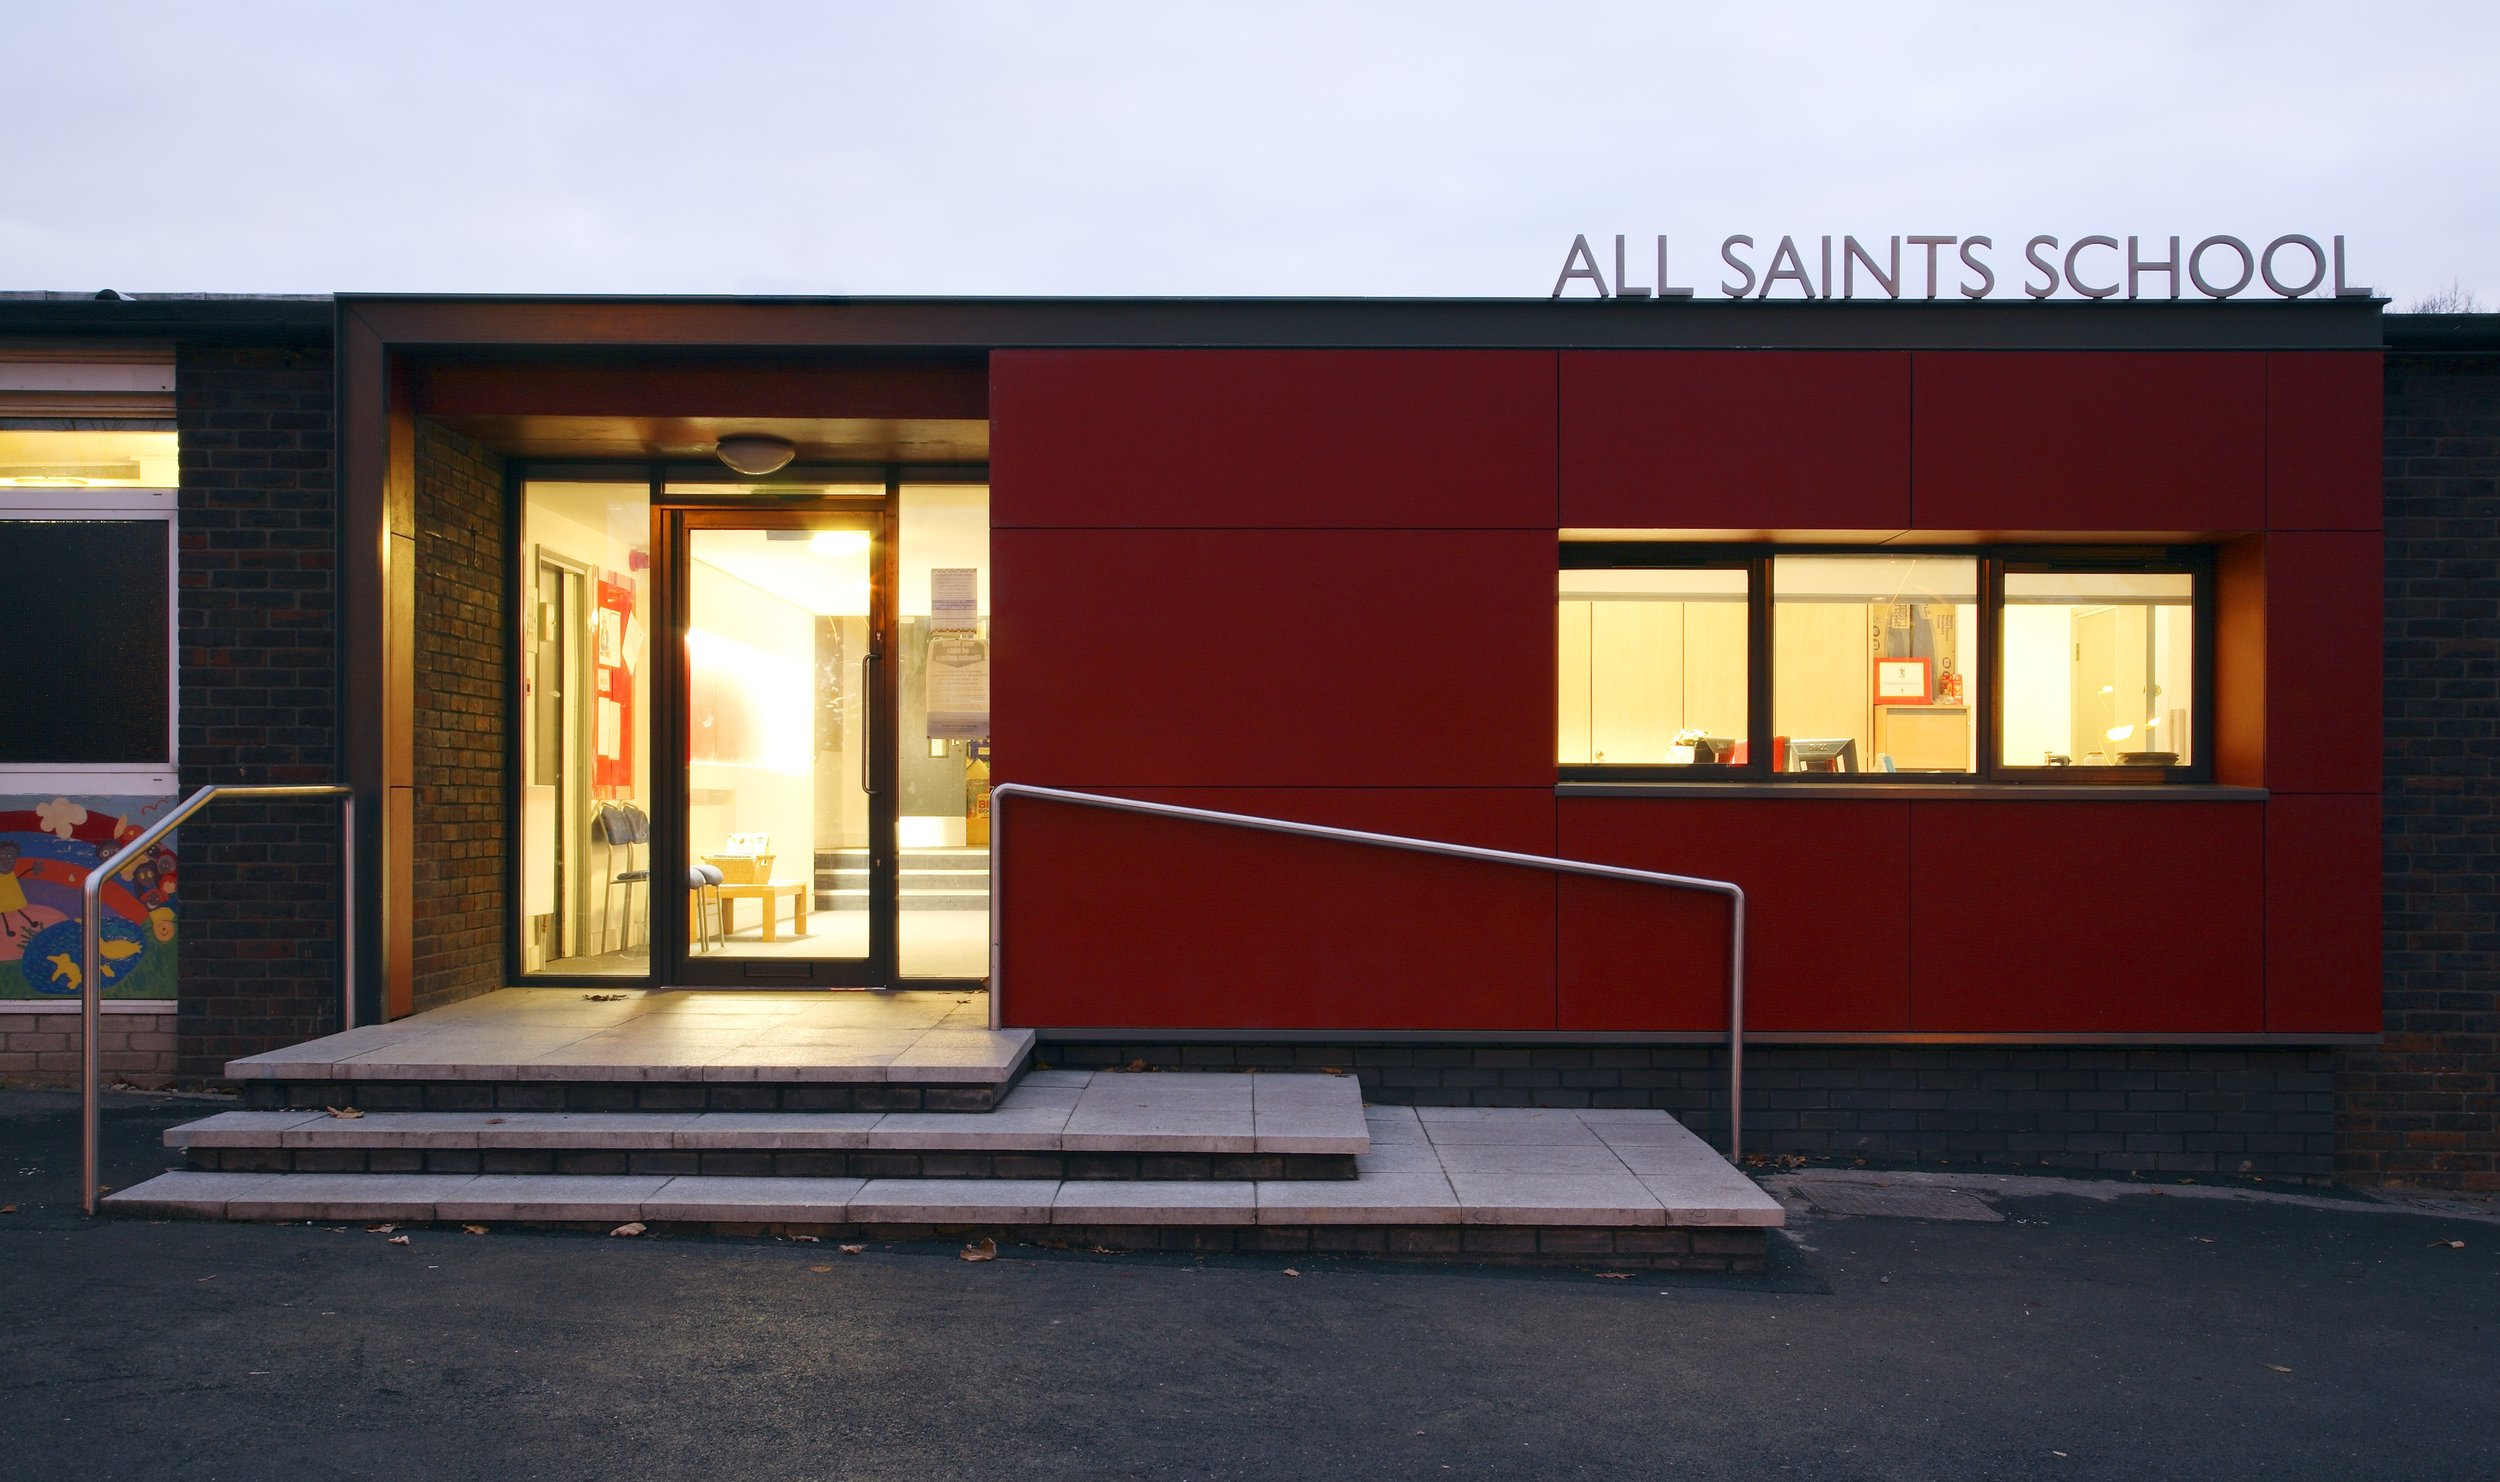 All Saints School_043.jpg